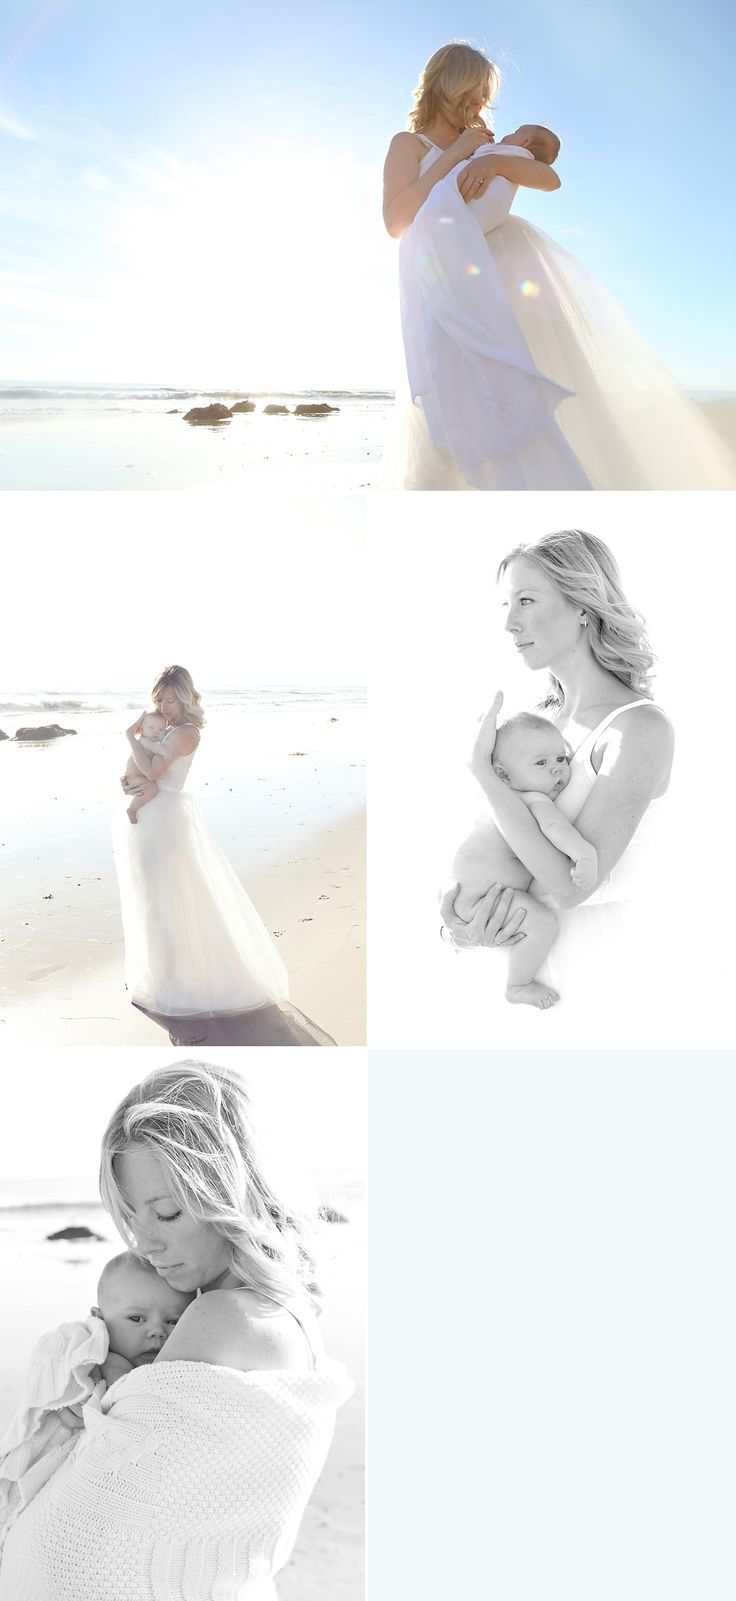 stunning.Newborns Shoots, Mom And Baby Beach Photos, Beach Pictures Ideas Families, Baby Beach Pictures Ideas, Mothers Baby Photography Beach, Beach Families Baby Pictures, Baby And Mom Pictures, Baby Beach Photography, Beautiful Mothers